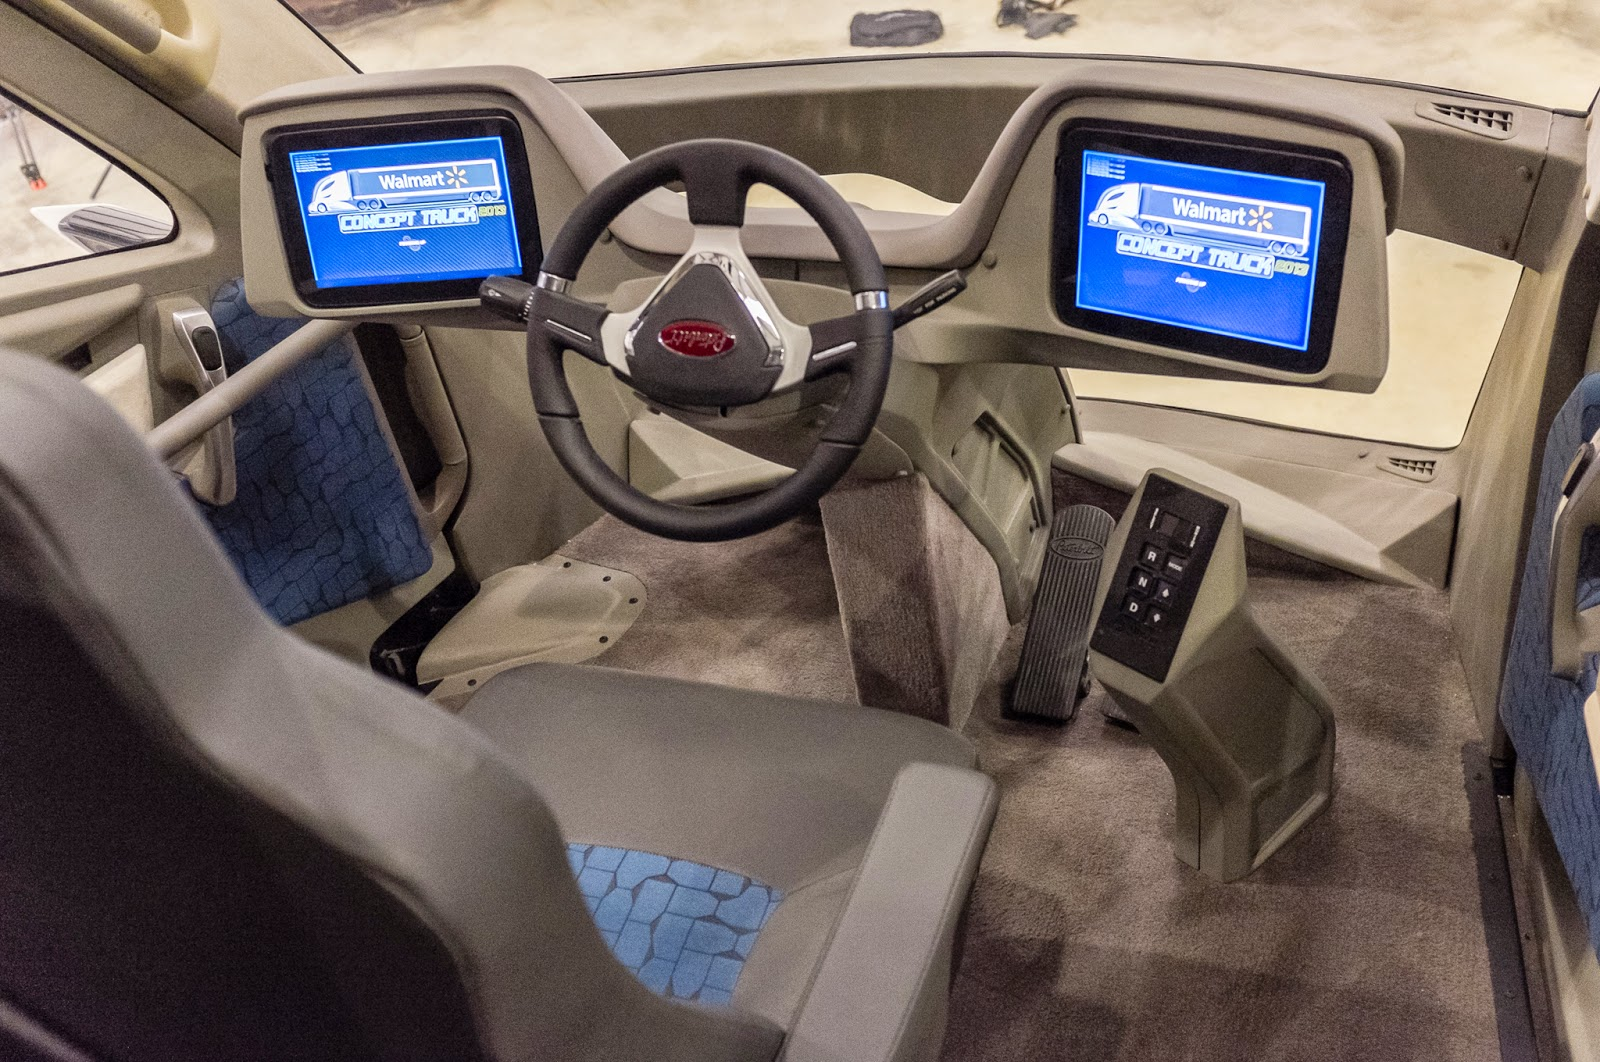 Interior View Of The Advanced Vehicle Experience Concept Truck Picture From Http Bit Ly 1b0kfjp